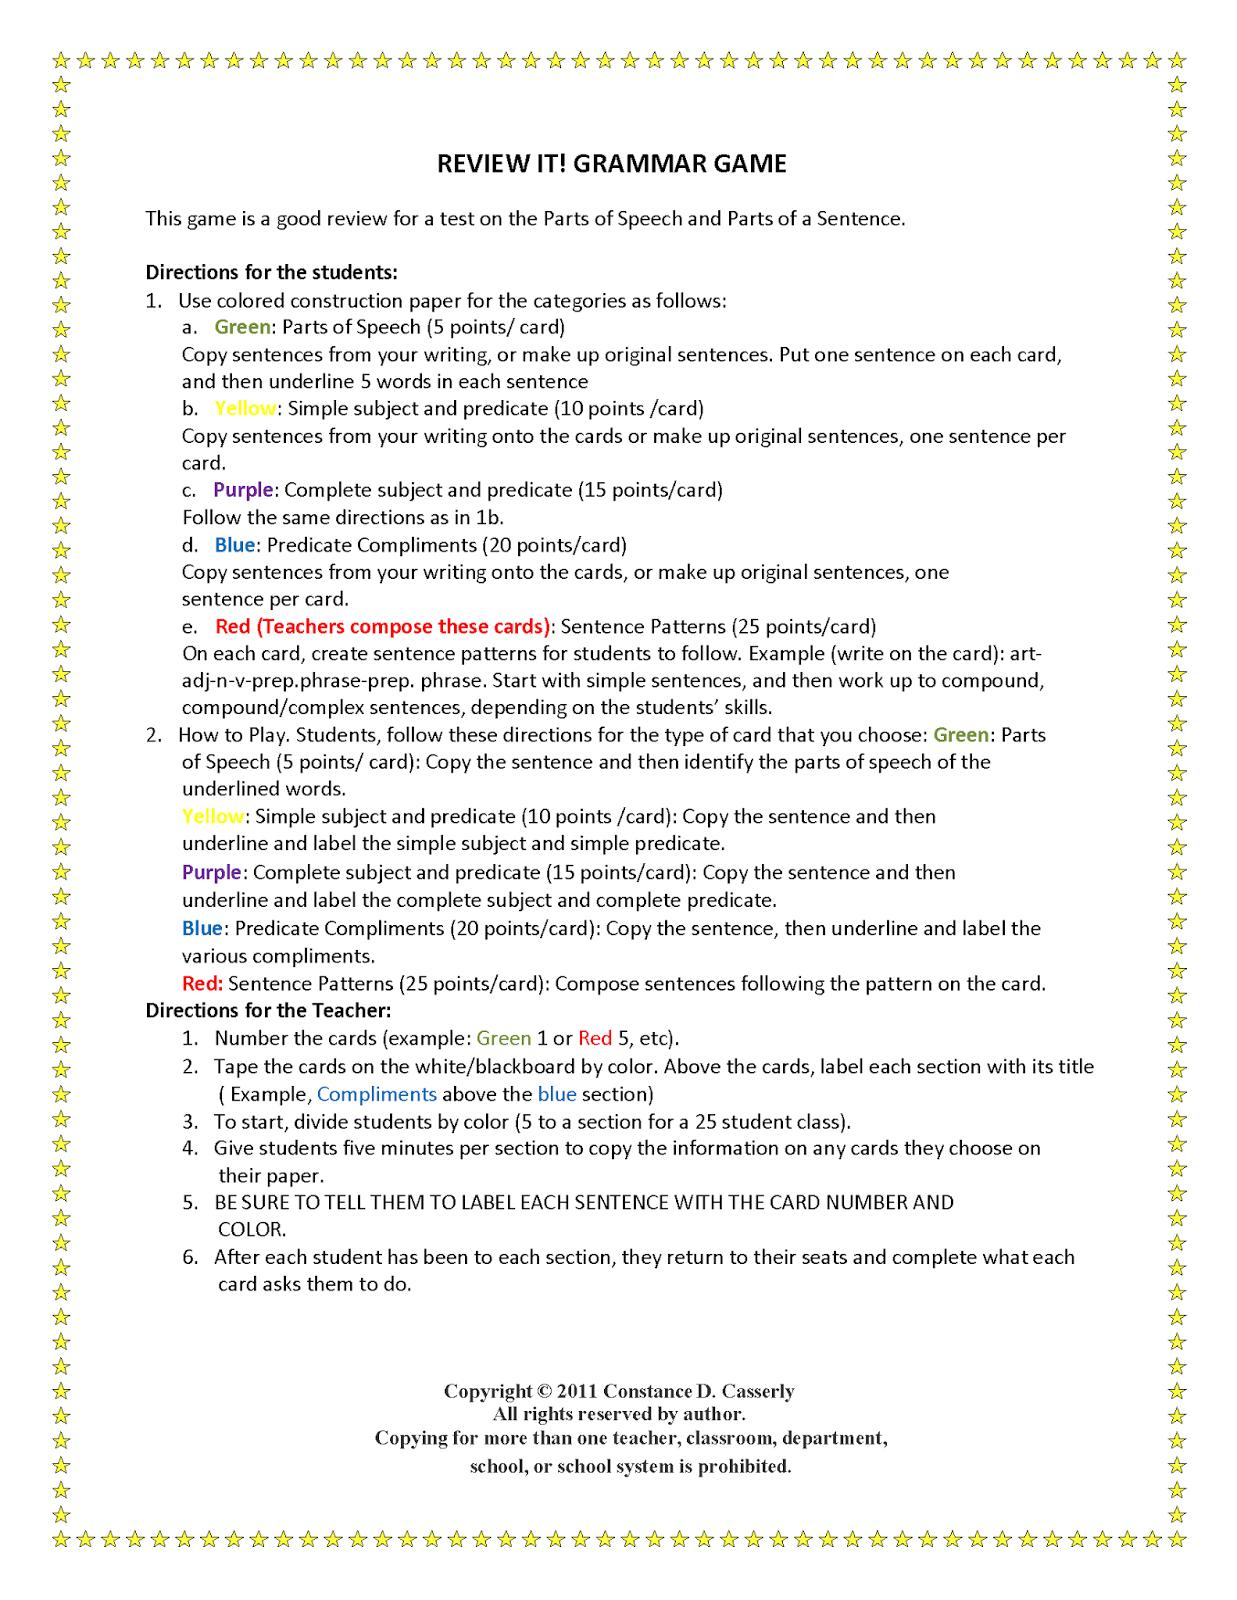 Worksheets Pages : Grammar Activities Worksheets High School Kids - Free Printable Grammar Worksheets For Highschool Students